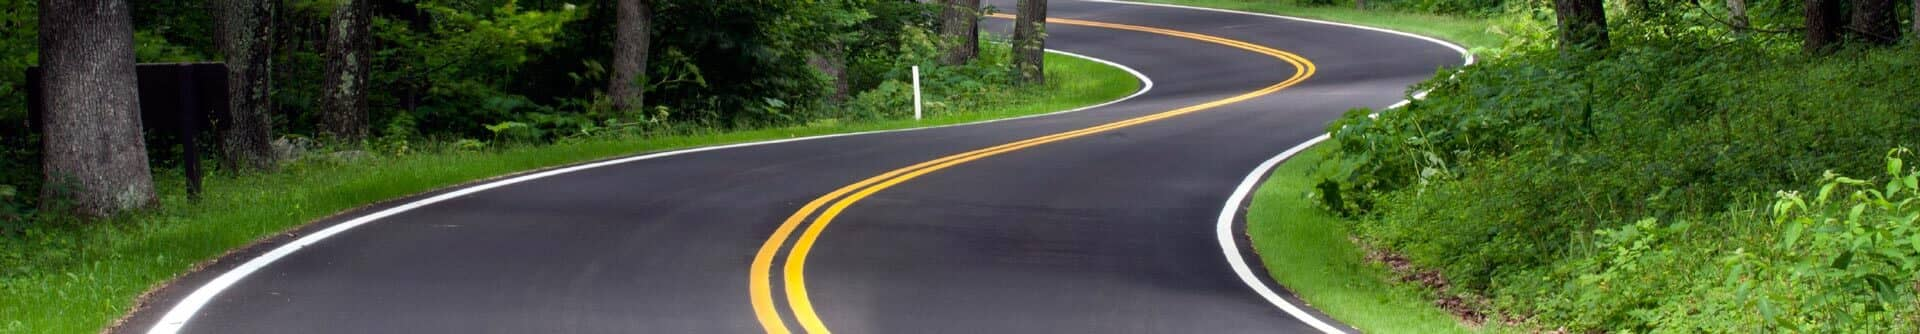 Minneapolis Asphalt Paving Company Service Request